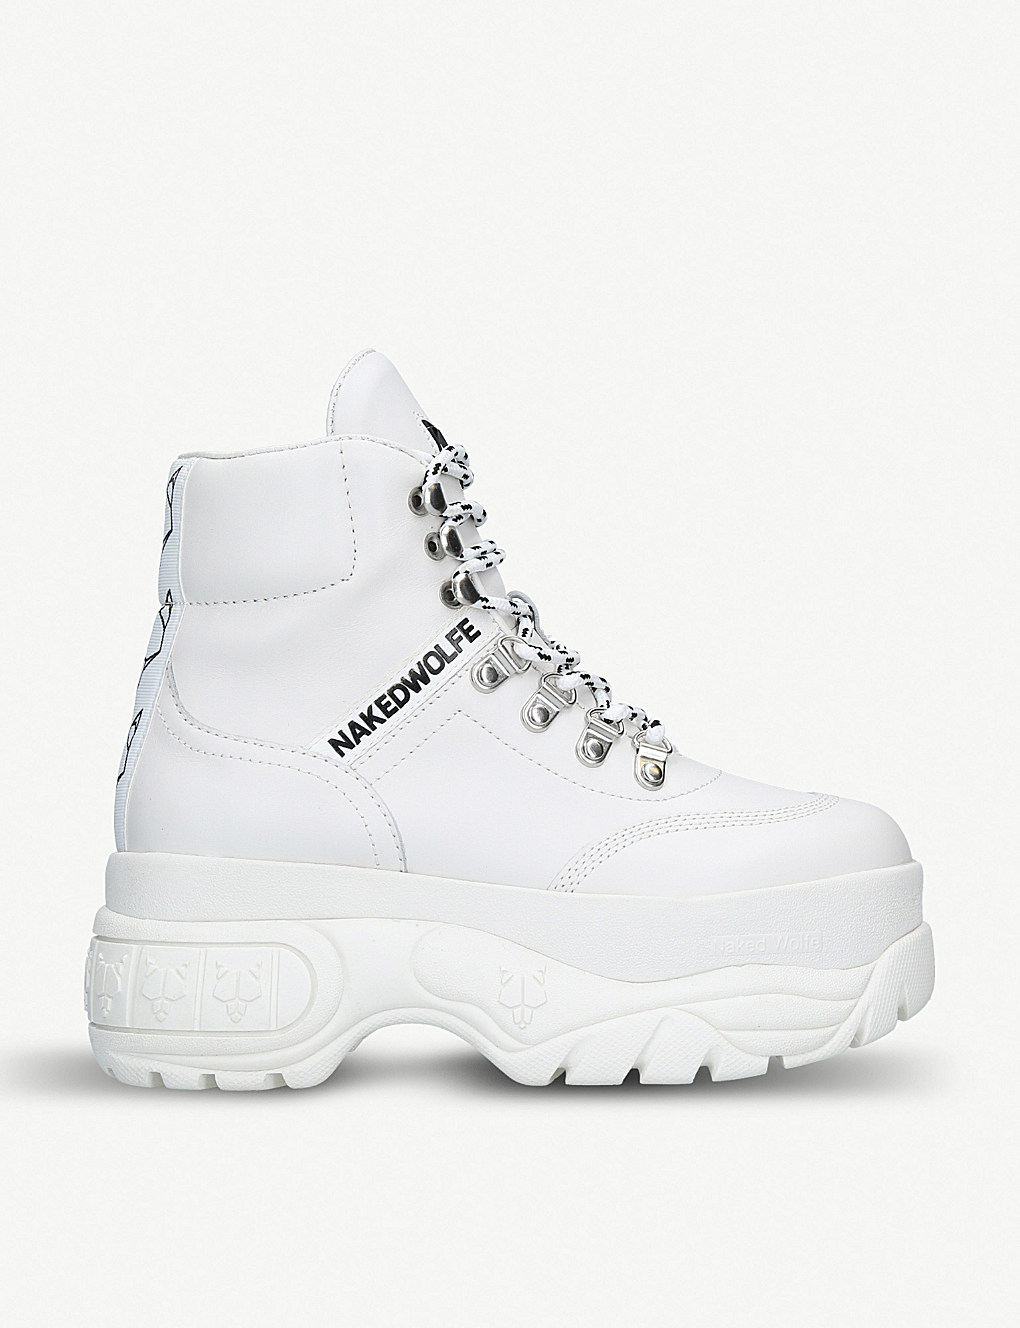 Wicked leather high-top sneakers by Naked Wolfe, available on selfridges.com for $210 Olivia Culpo Shoes Exact Product